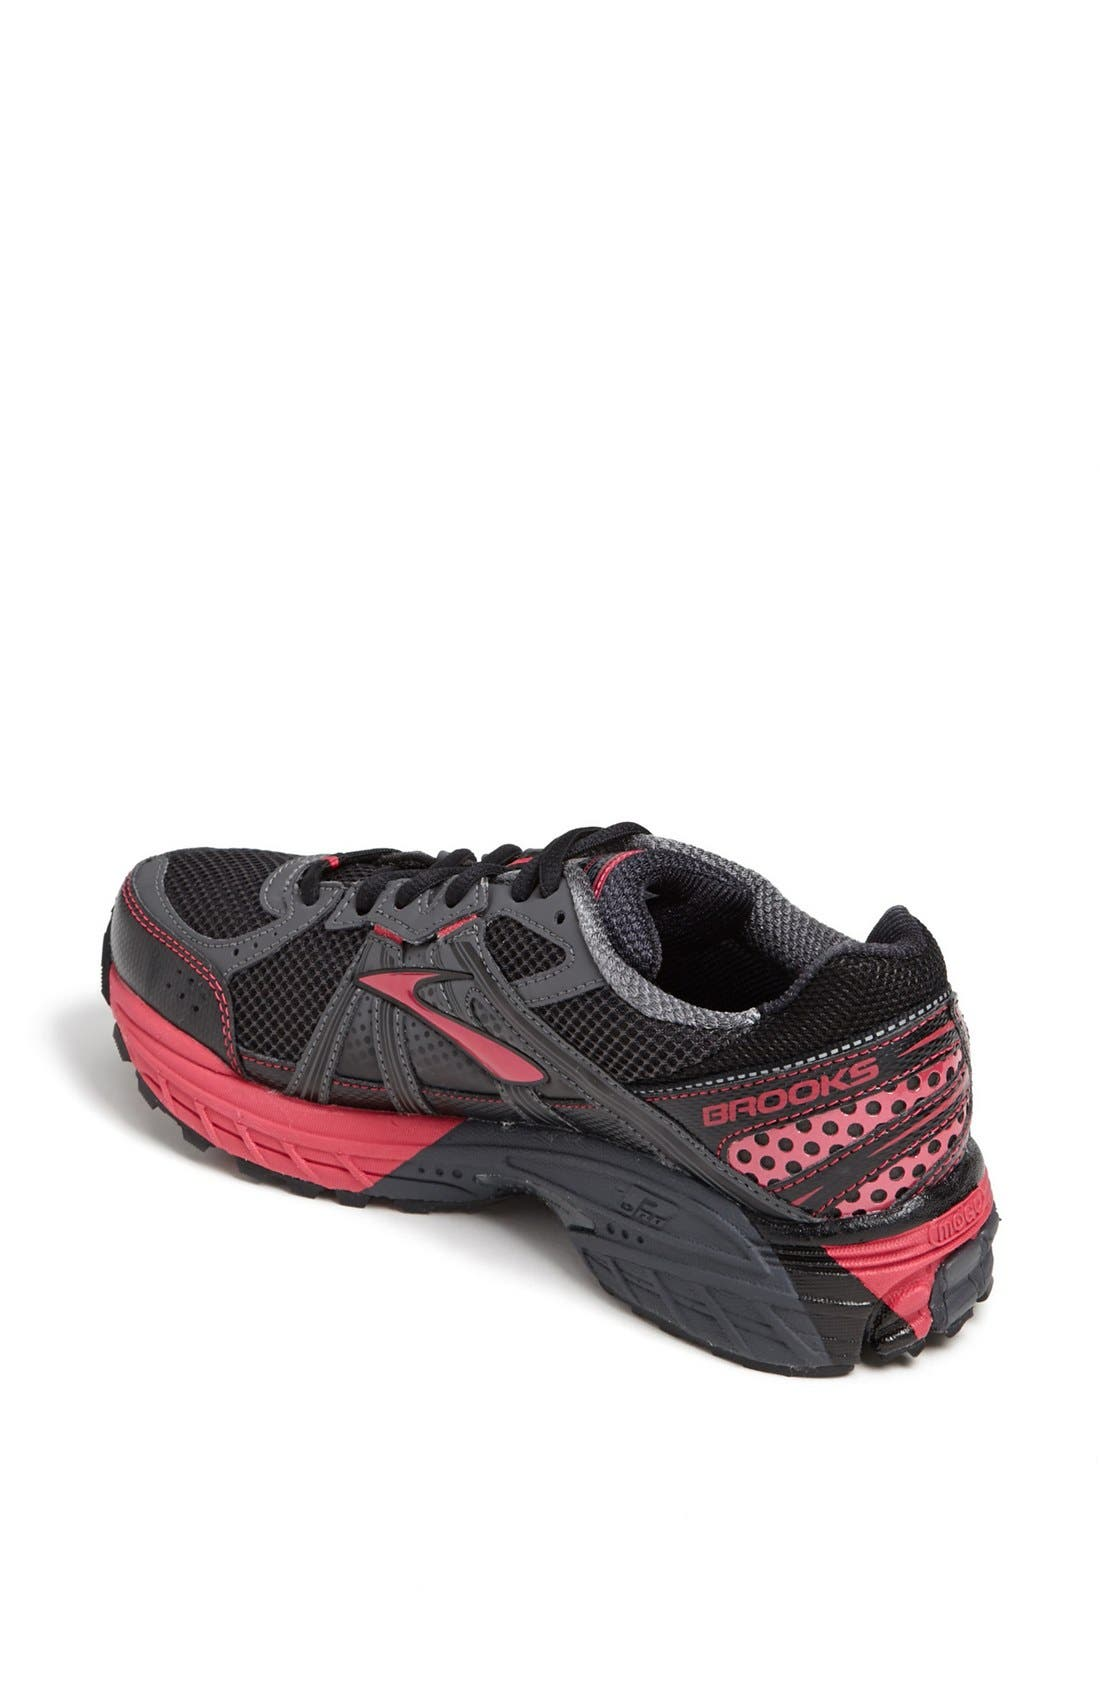 Alternate Image 2  - Brooks 'Adrenaline ASR 10 GTX' Trail Running Shoe (Women)